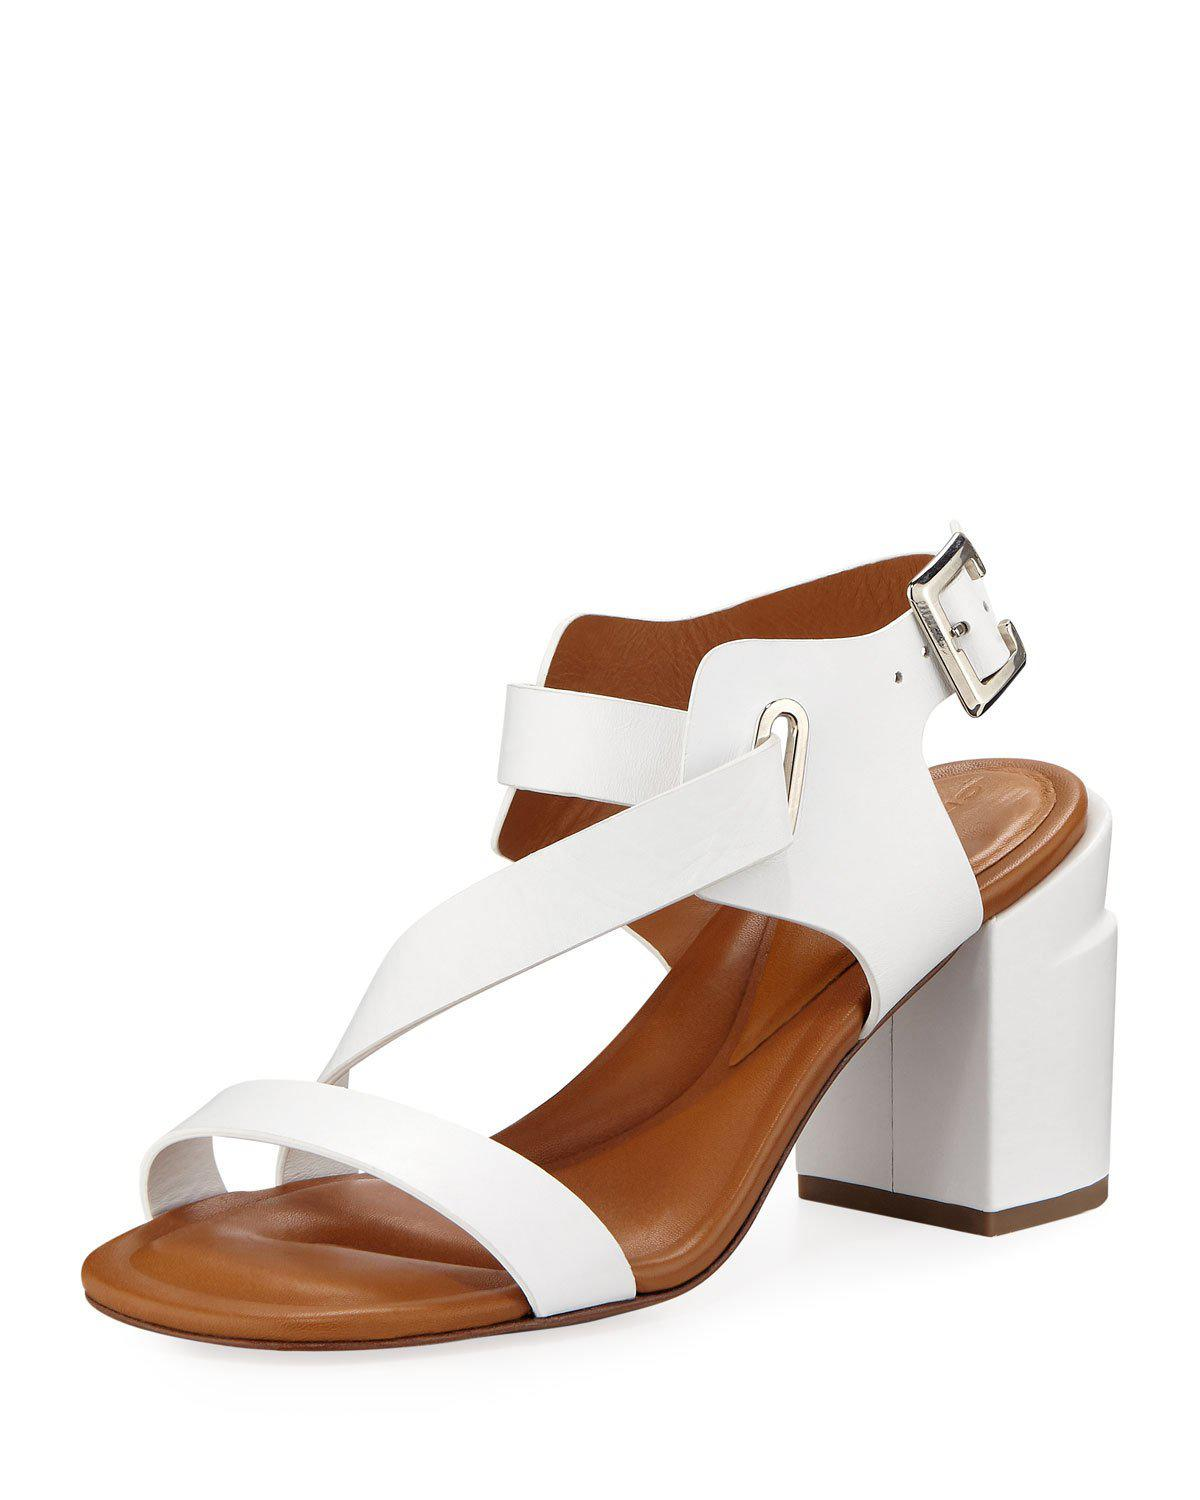 66d0e86d0 Robert Clergerie Alba Strappy Leather Sandals In White | ModeSens